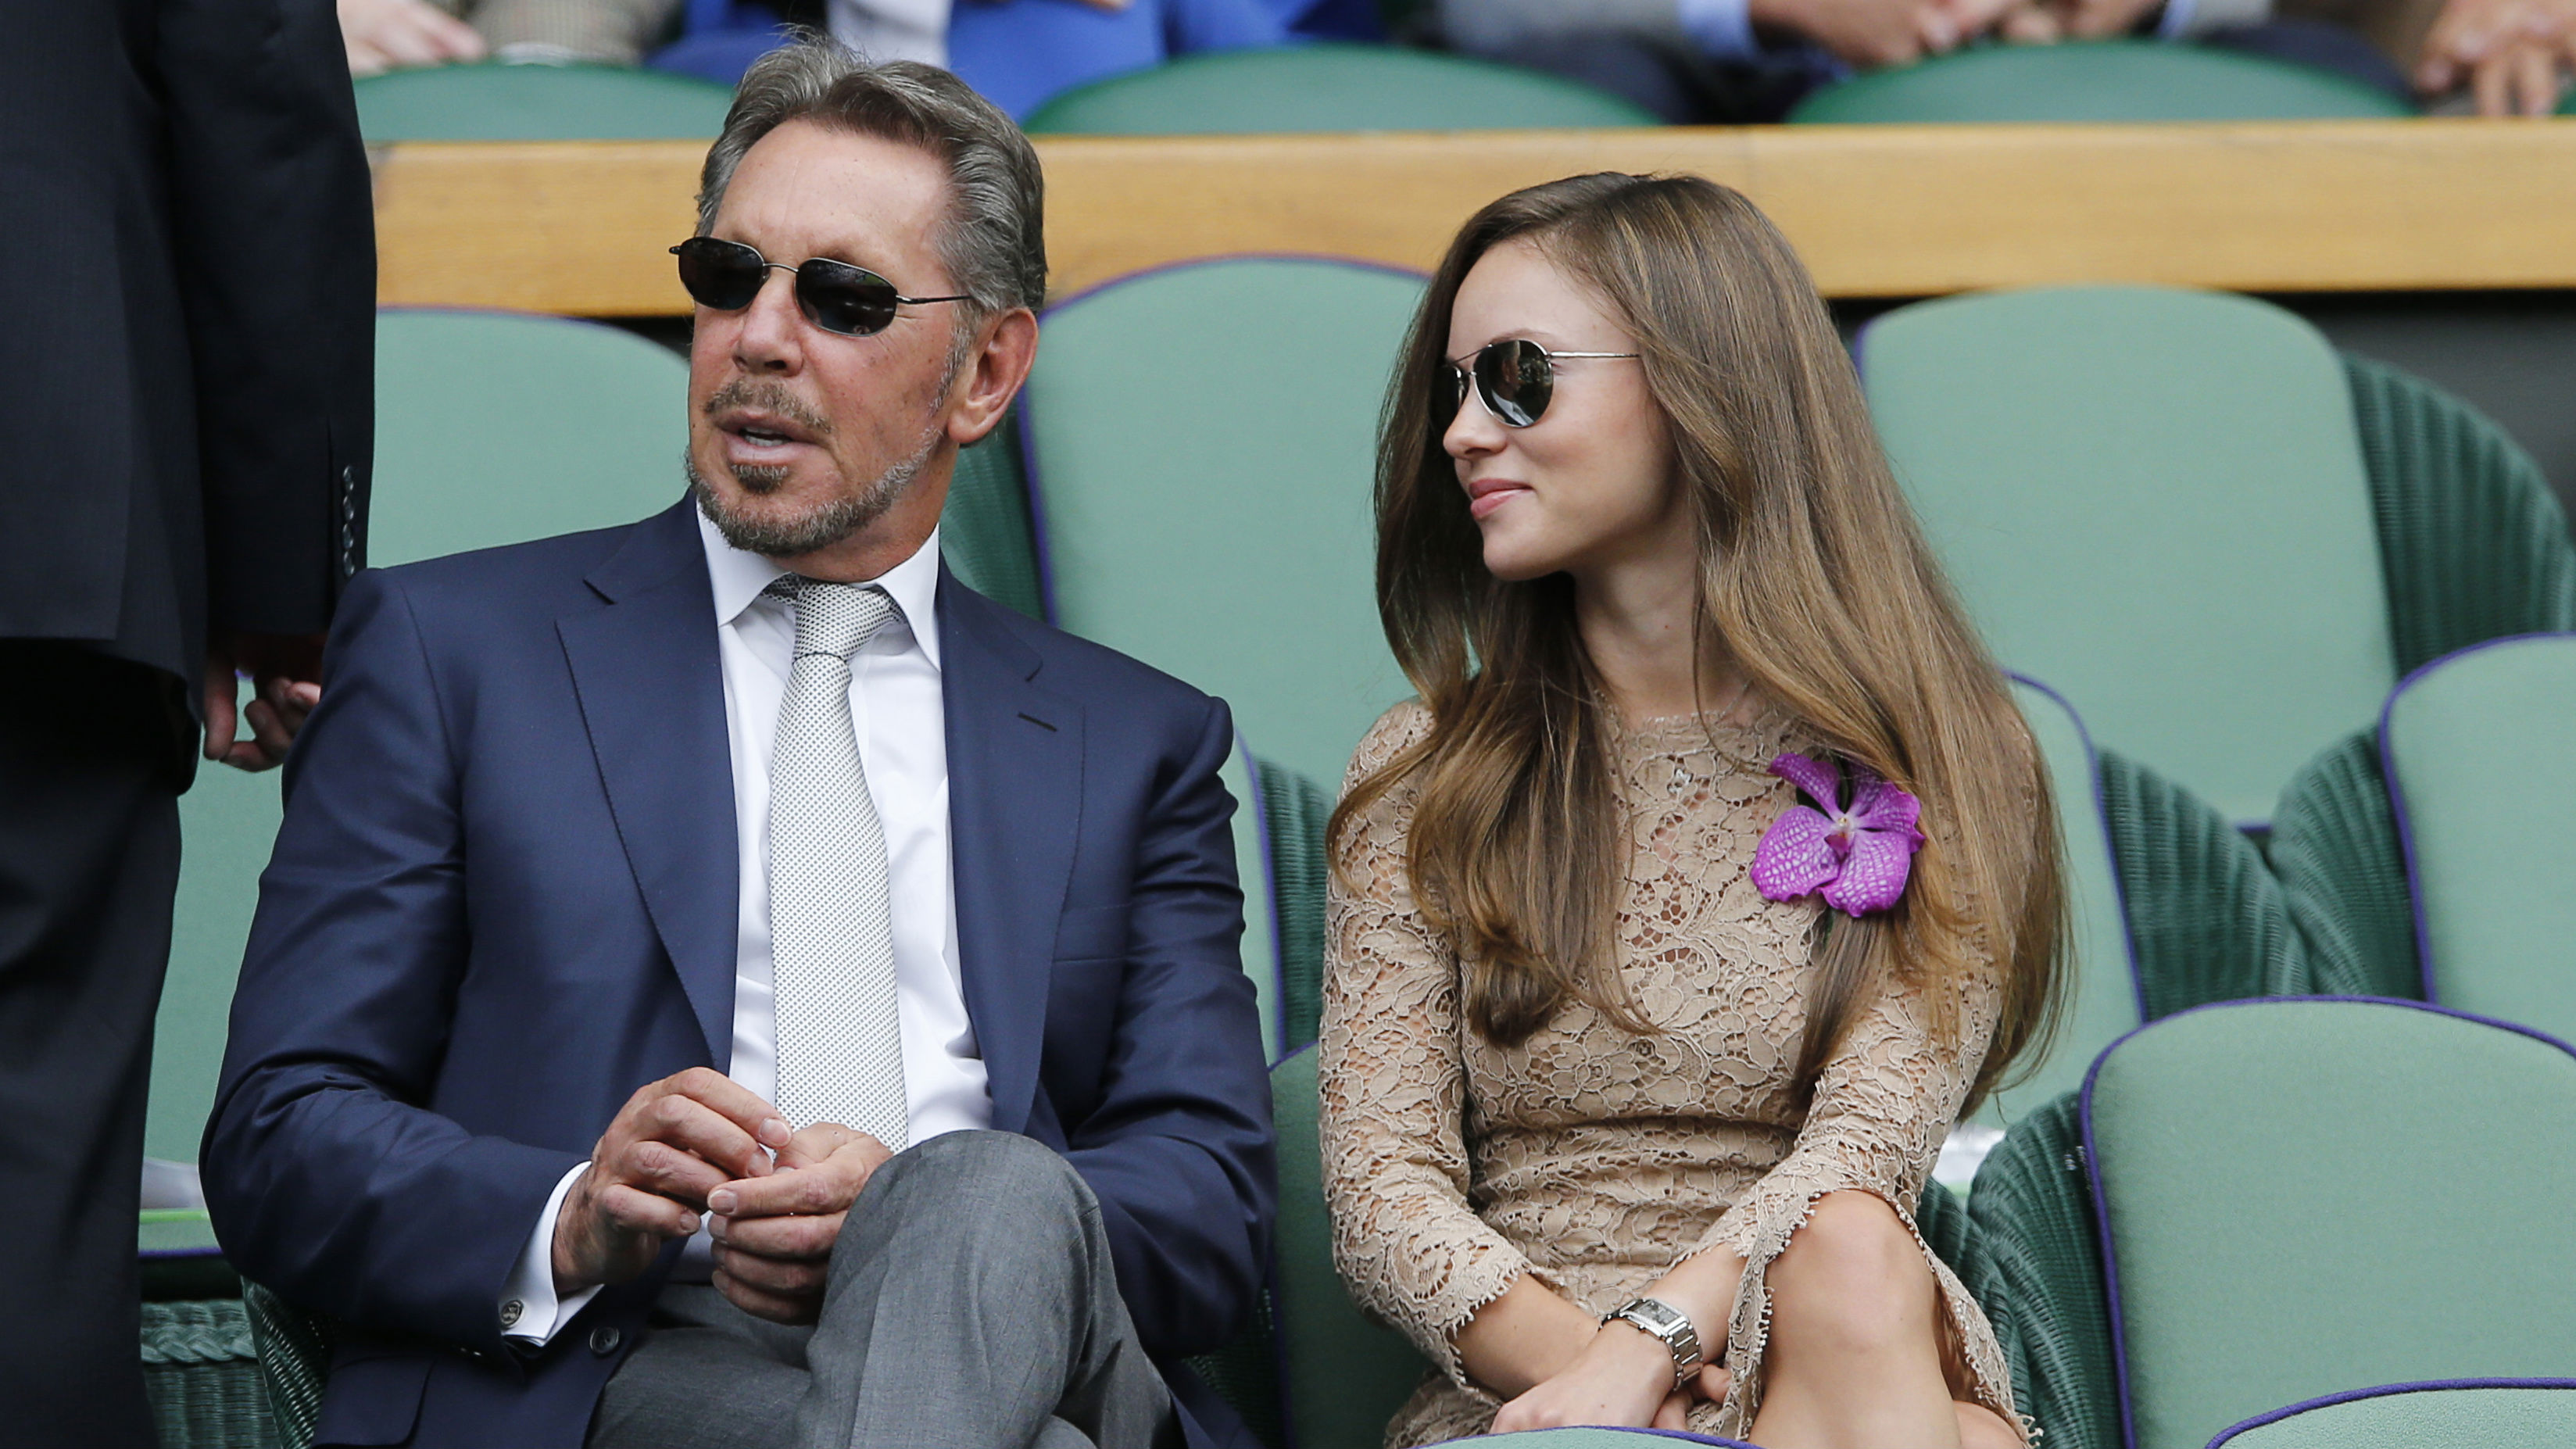 Larry Ellison, left, and Nikita Kahn take their seats in the Royal Box prior to the men's singles final between Roger Federer of Switzerland and Novak Djokovic of Serbia on centre court at the All England Lawn Tennis Championships in Wimbledon, London, Sunday July 6, 2014. (AP Photo/Ben Curtis)